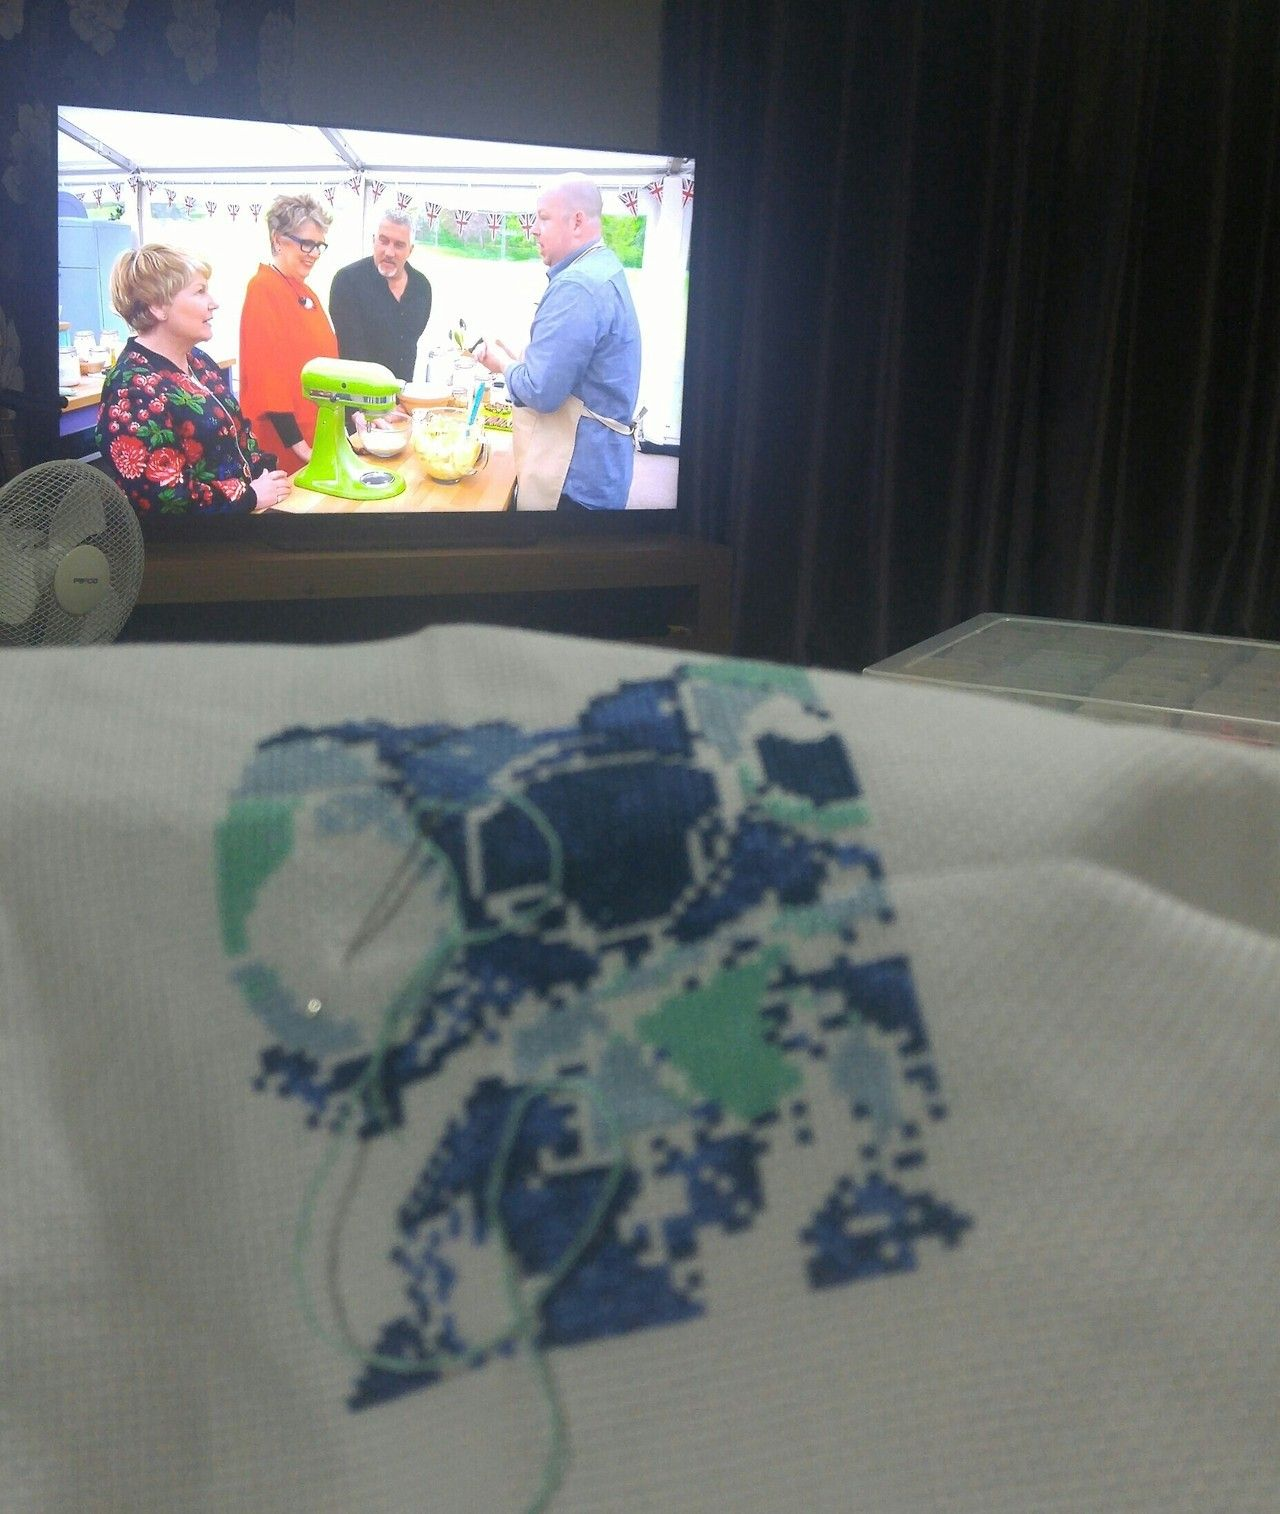 Cross stitch and Great British Bake Off. I have reached peak grandma. - #& #2017: #bake #british #crafts #cross #gbbo #great #handmade #needle #needlework #off #sewing #stitch #thread #xstitch